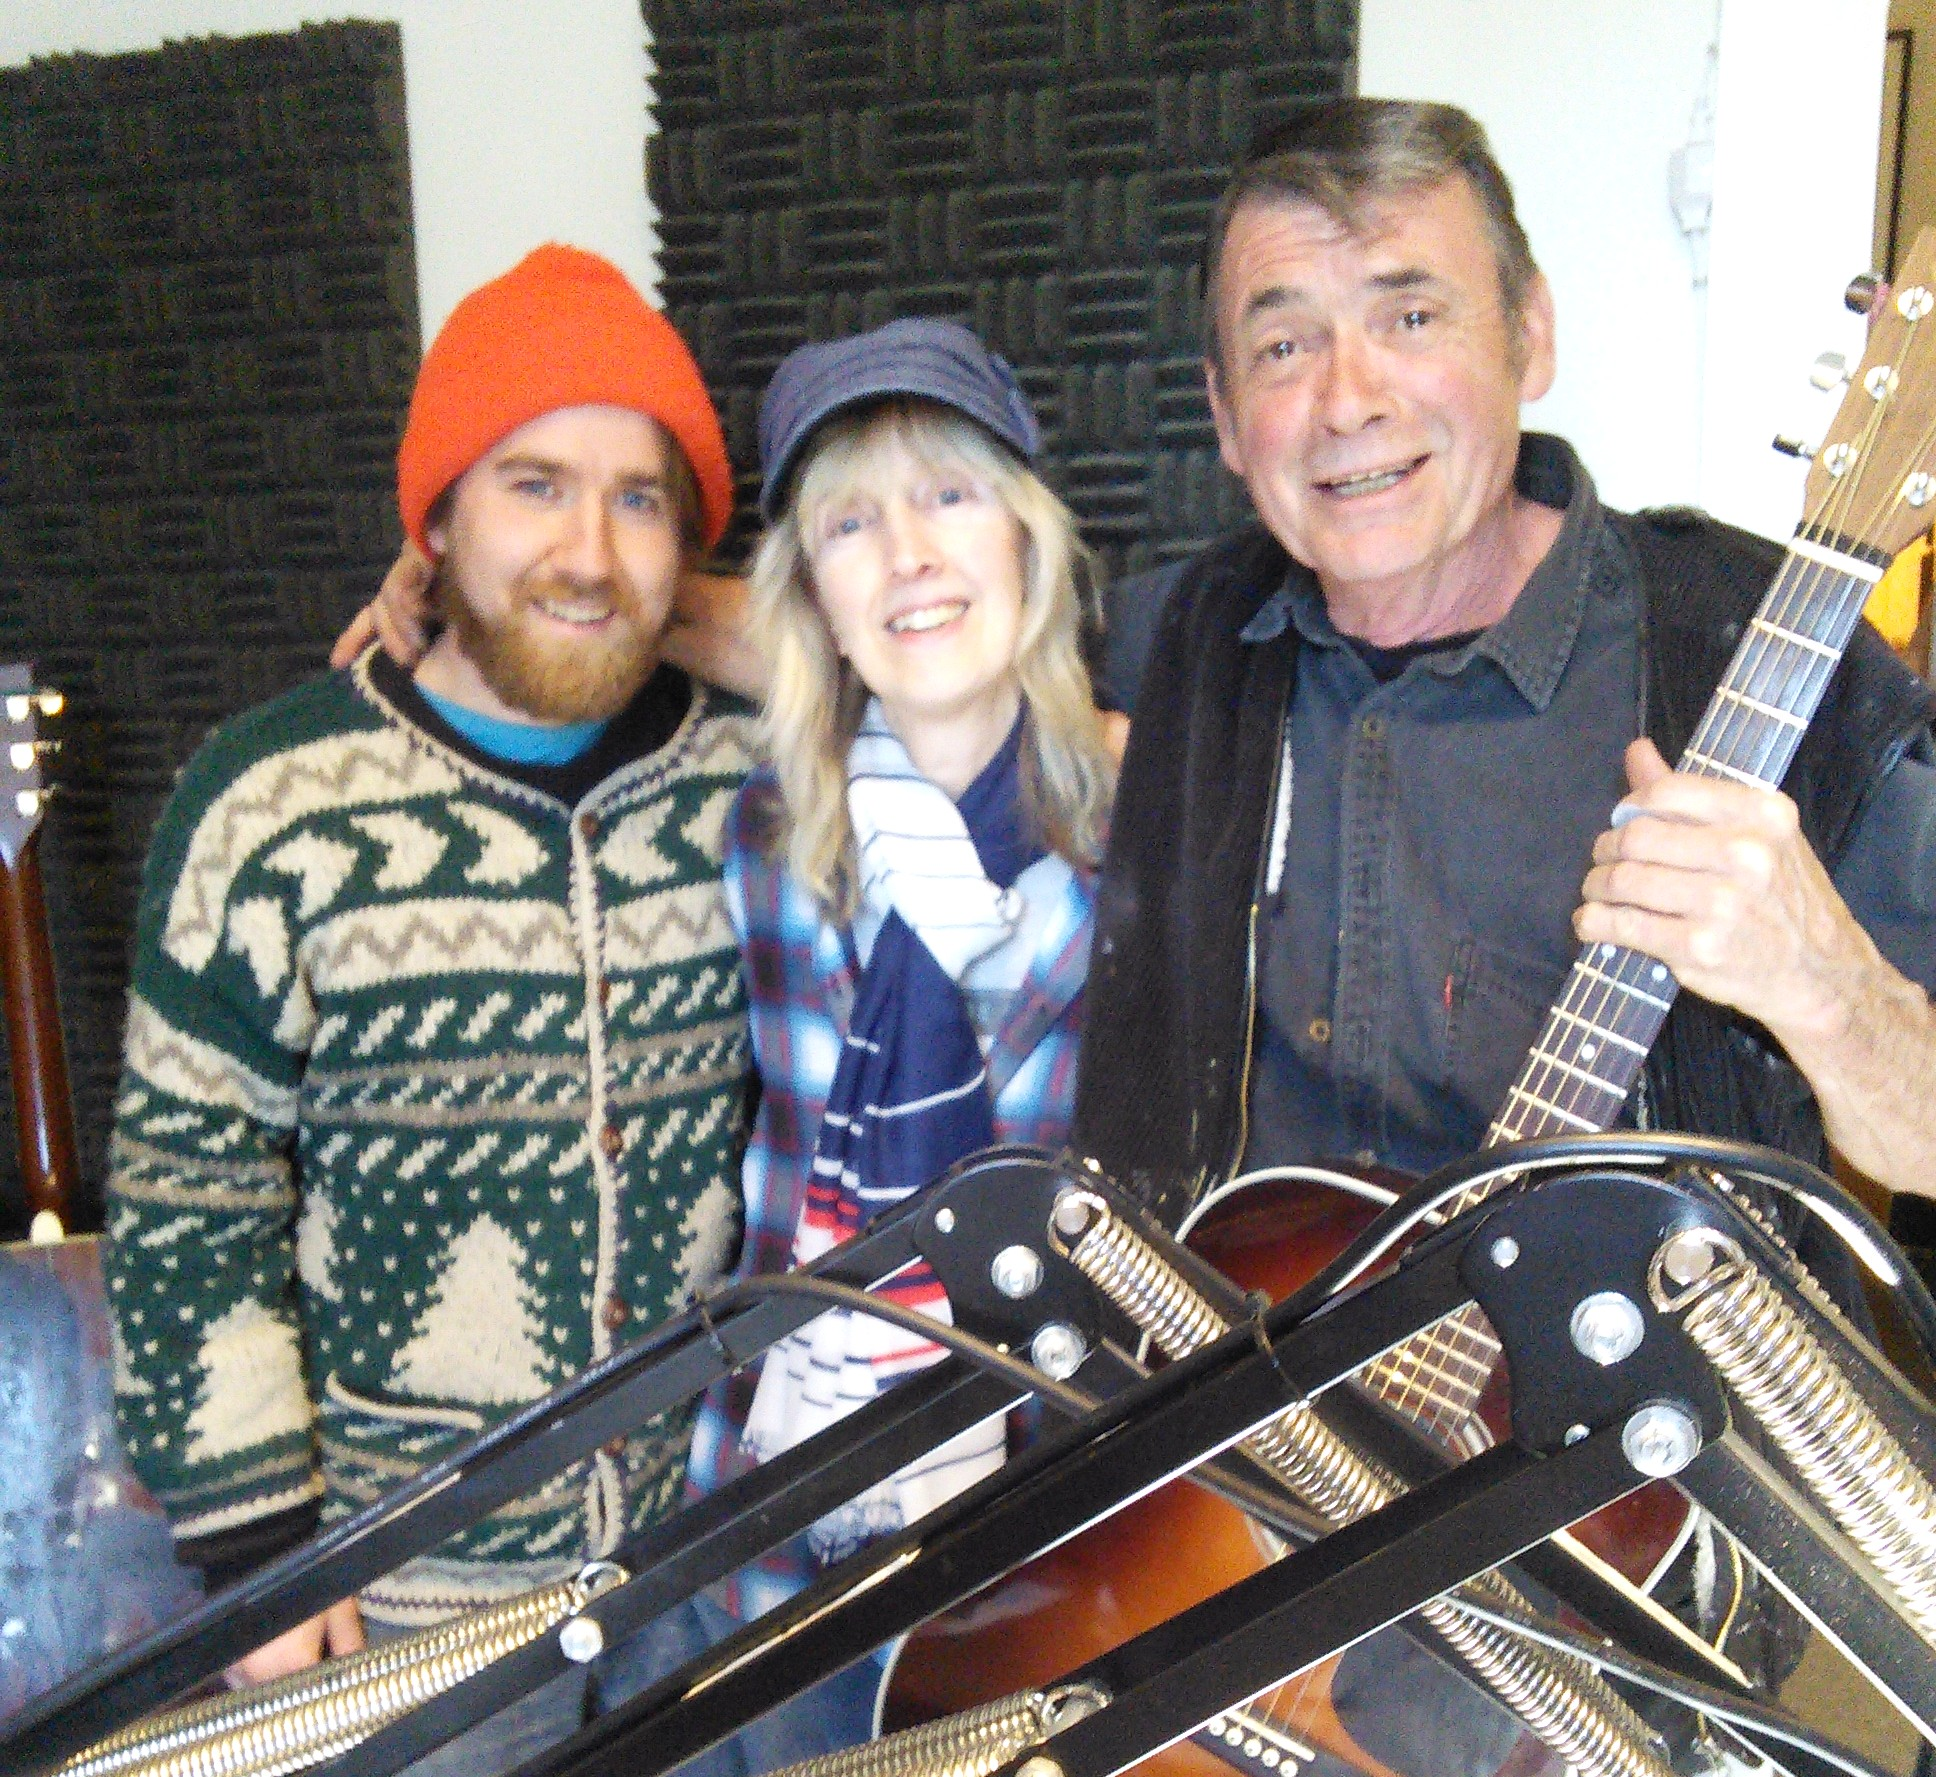 Scotty Dugan & Hank O'Reilly on Northern Aire with Penny- Randall Mowbray